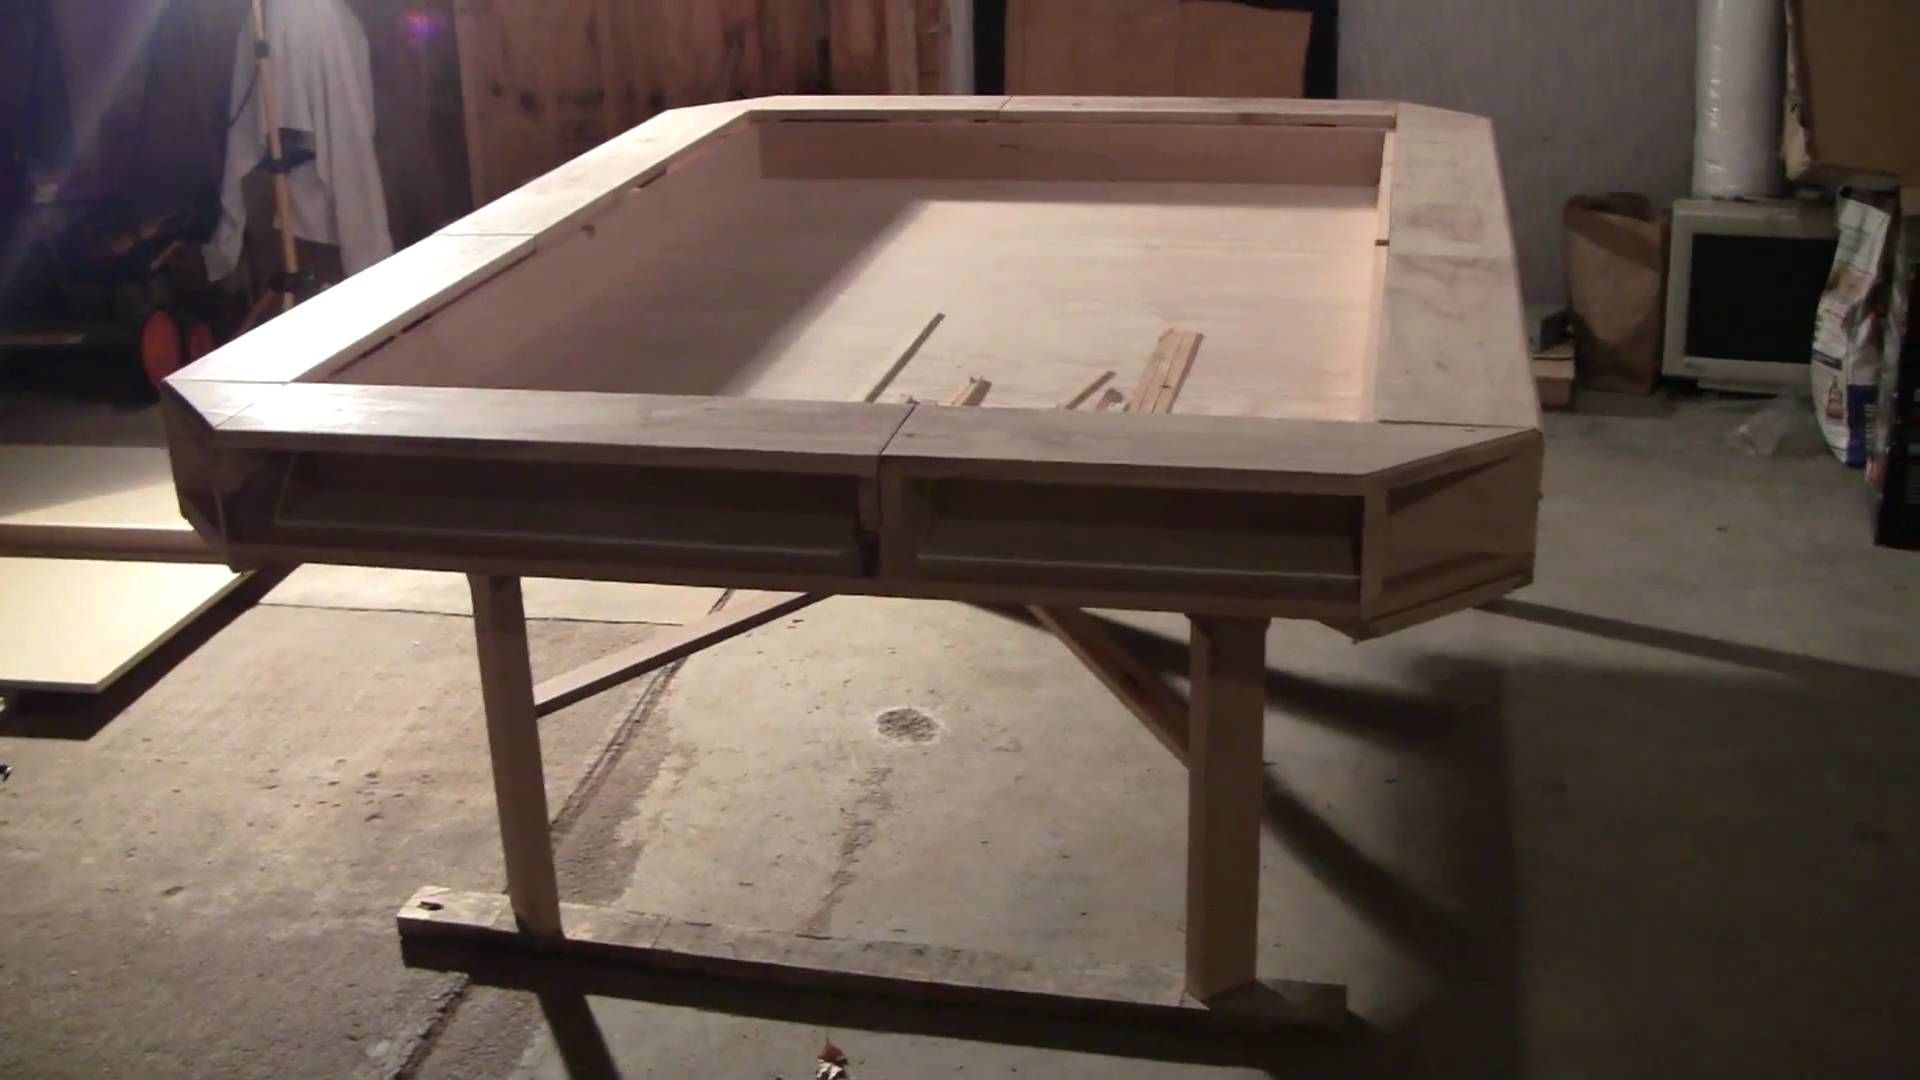 Cool Design For A Gaming Table With Interesting Fold Out Sections For RPG  Games, Cup